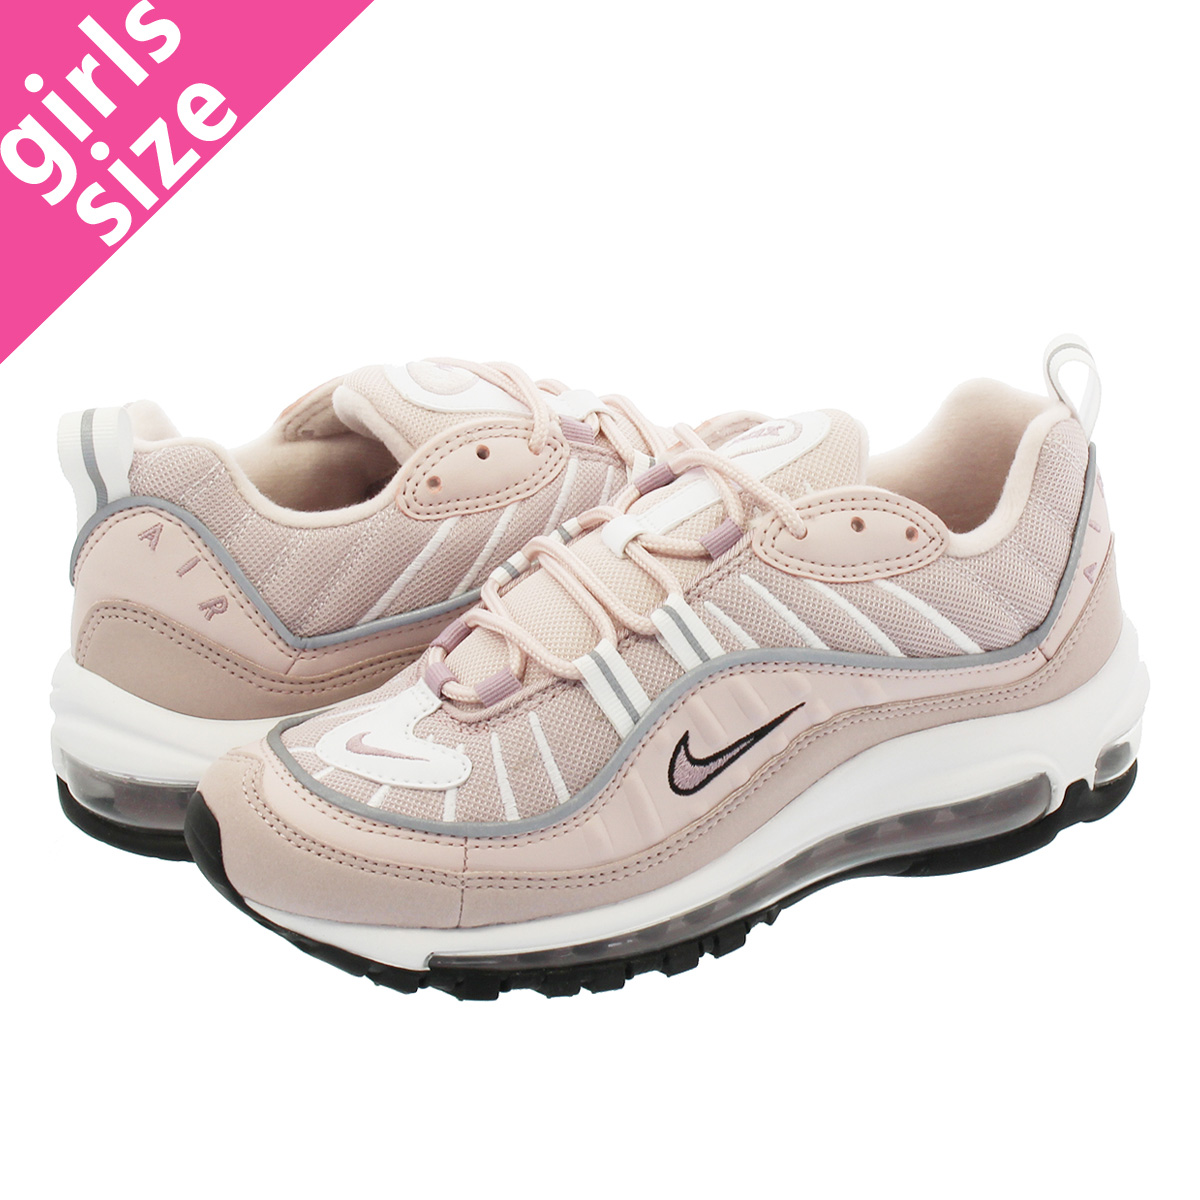 NIKE WMNS AIR MAX 98 Nike women Air Max 98 BARELY ROSE ELEMENTAL  ROSE PARTICLE ROSE 4321c4898216